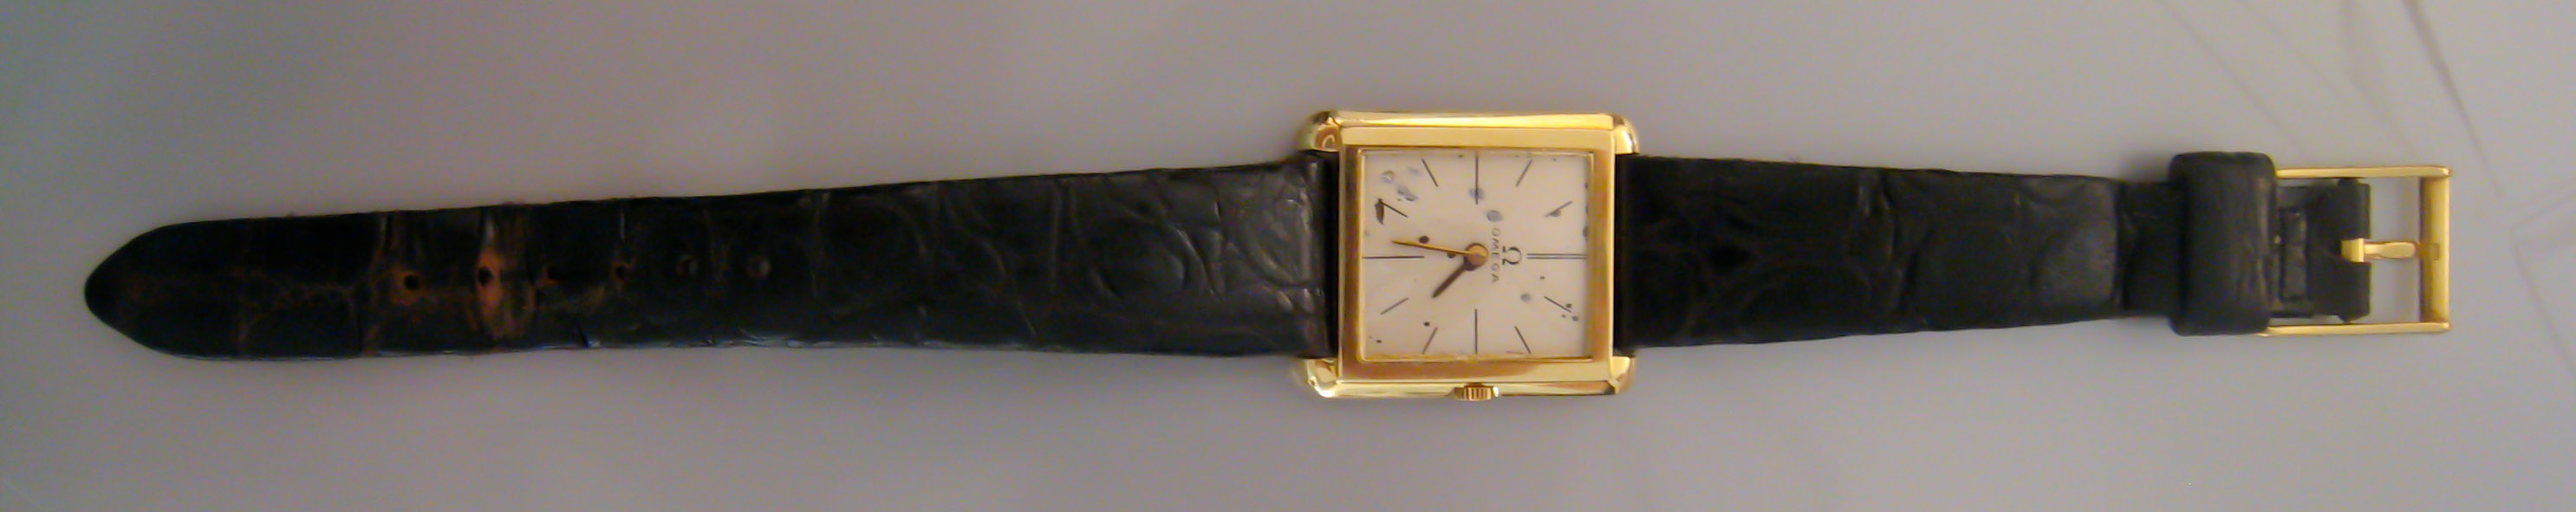 1960: John F. Kennedy's OMEGA Slimline watch